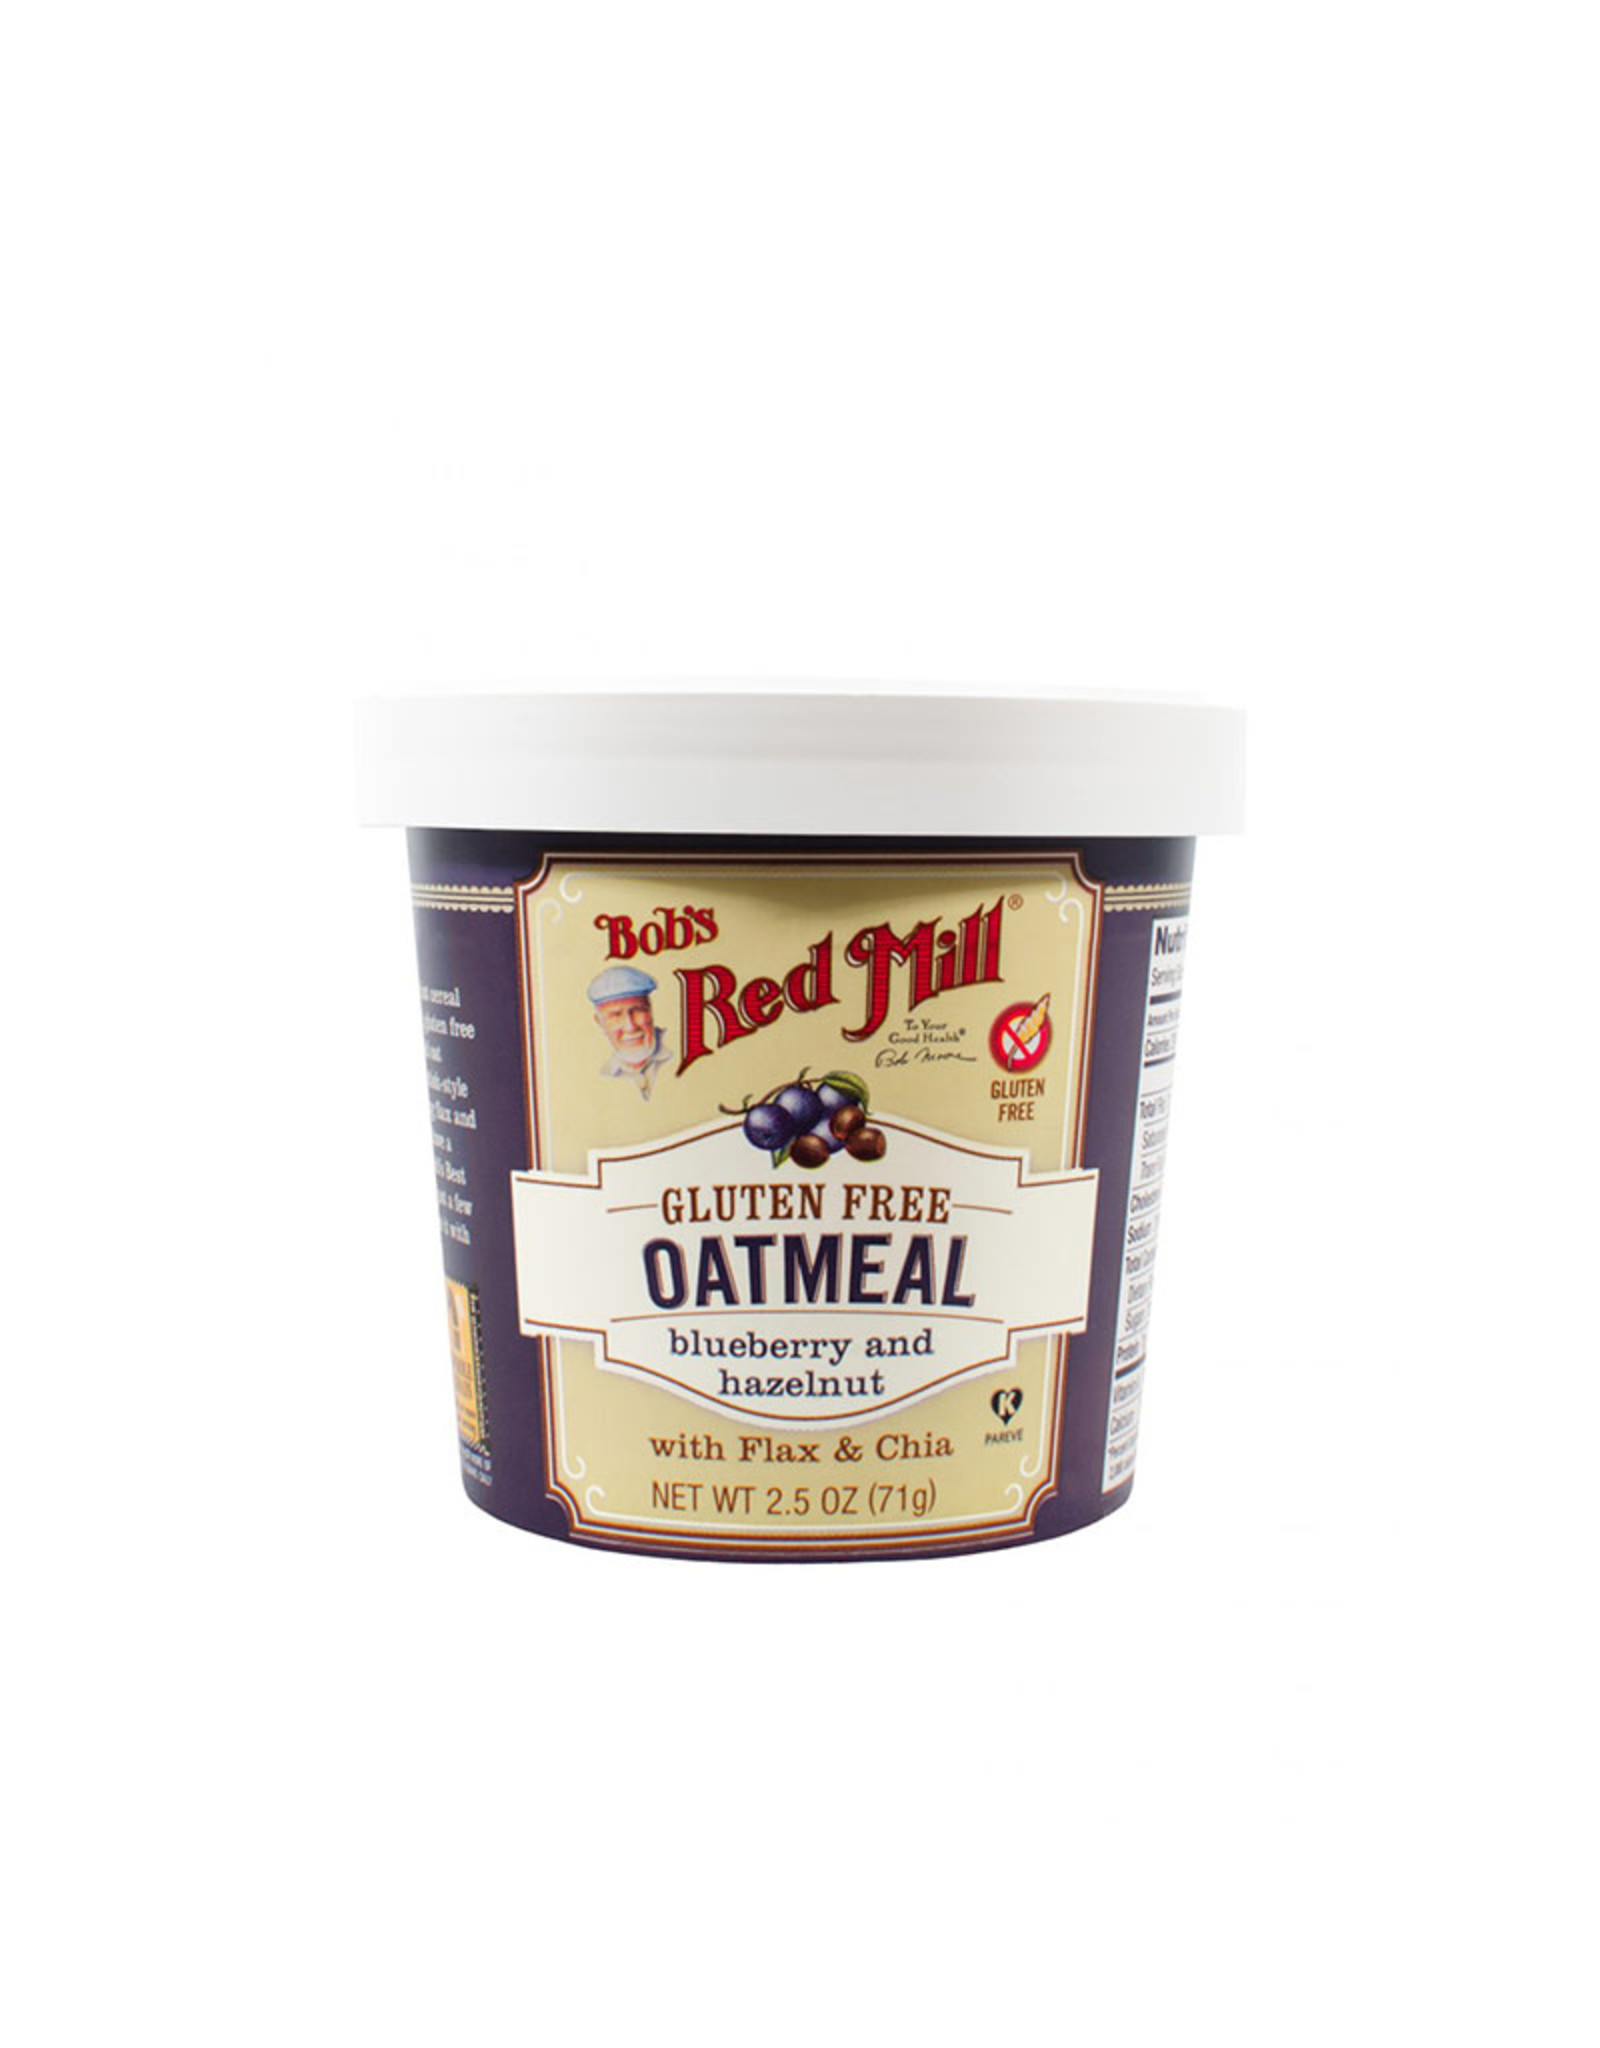 Bob's Red Mill Bobs Red Mill - Oatmeal Cups, Blueberry Hazelnut (71g)